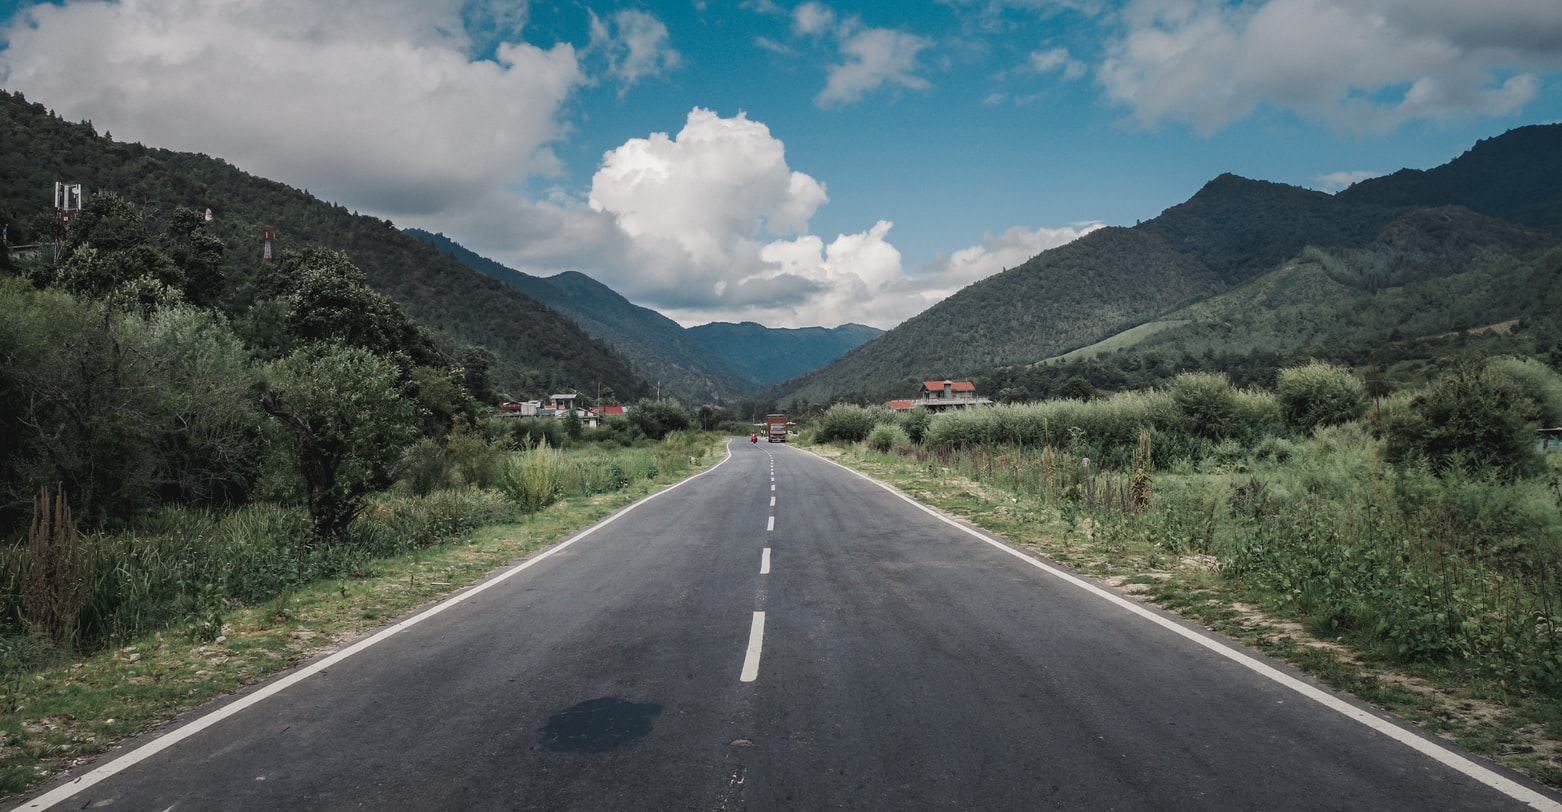 A road view in Arunachal Pradesh